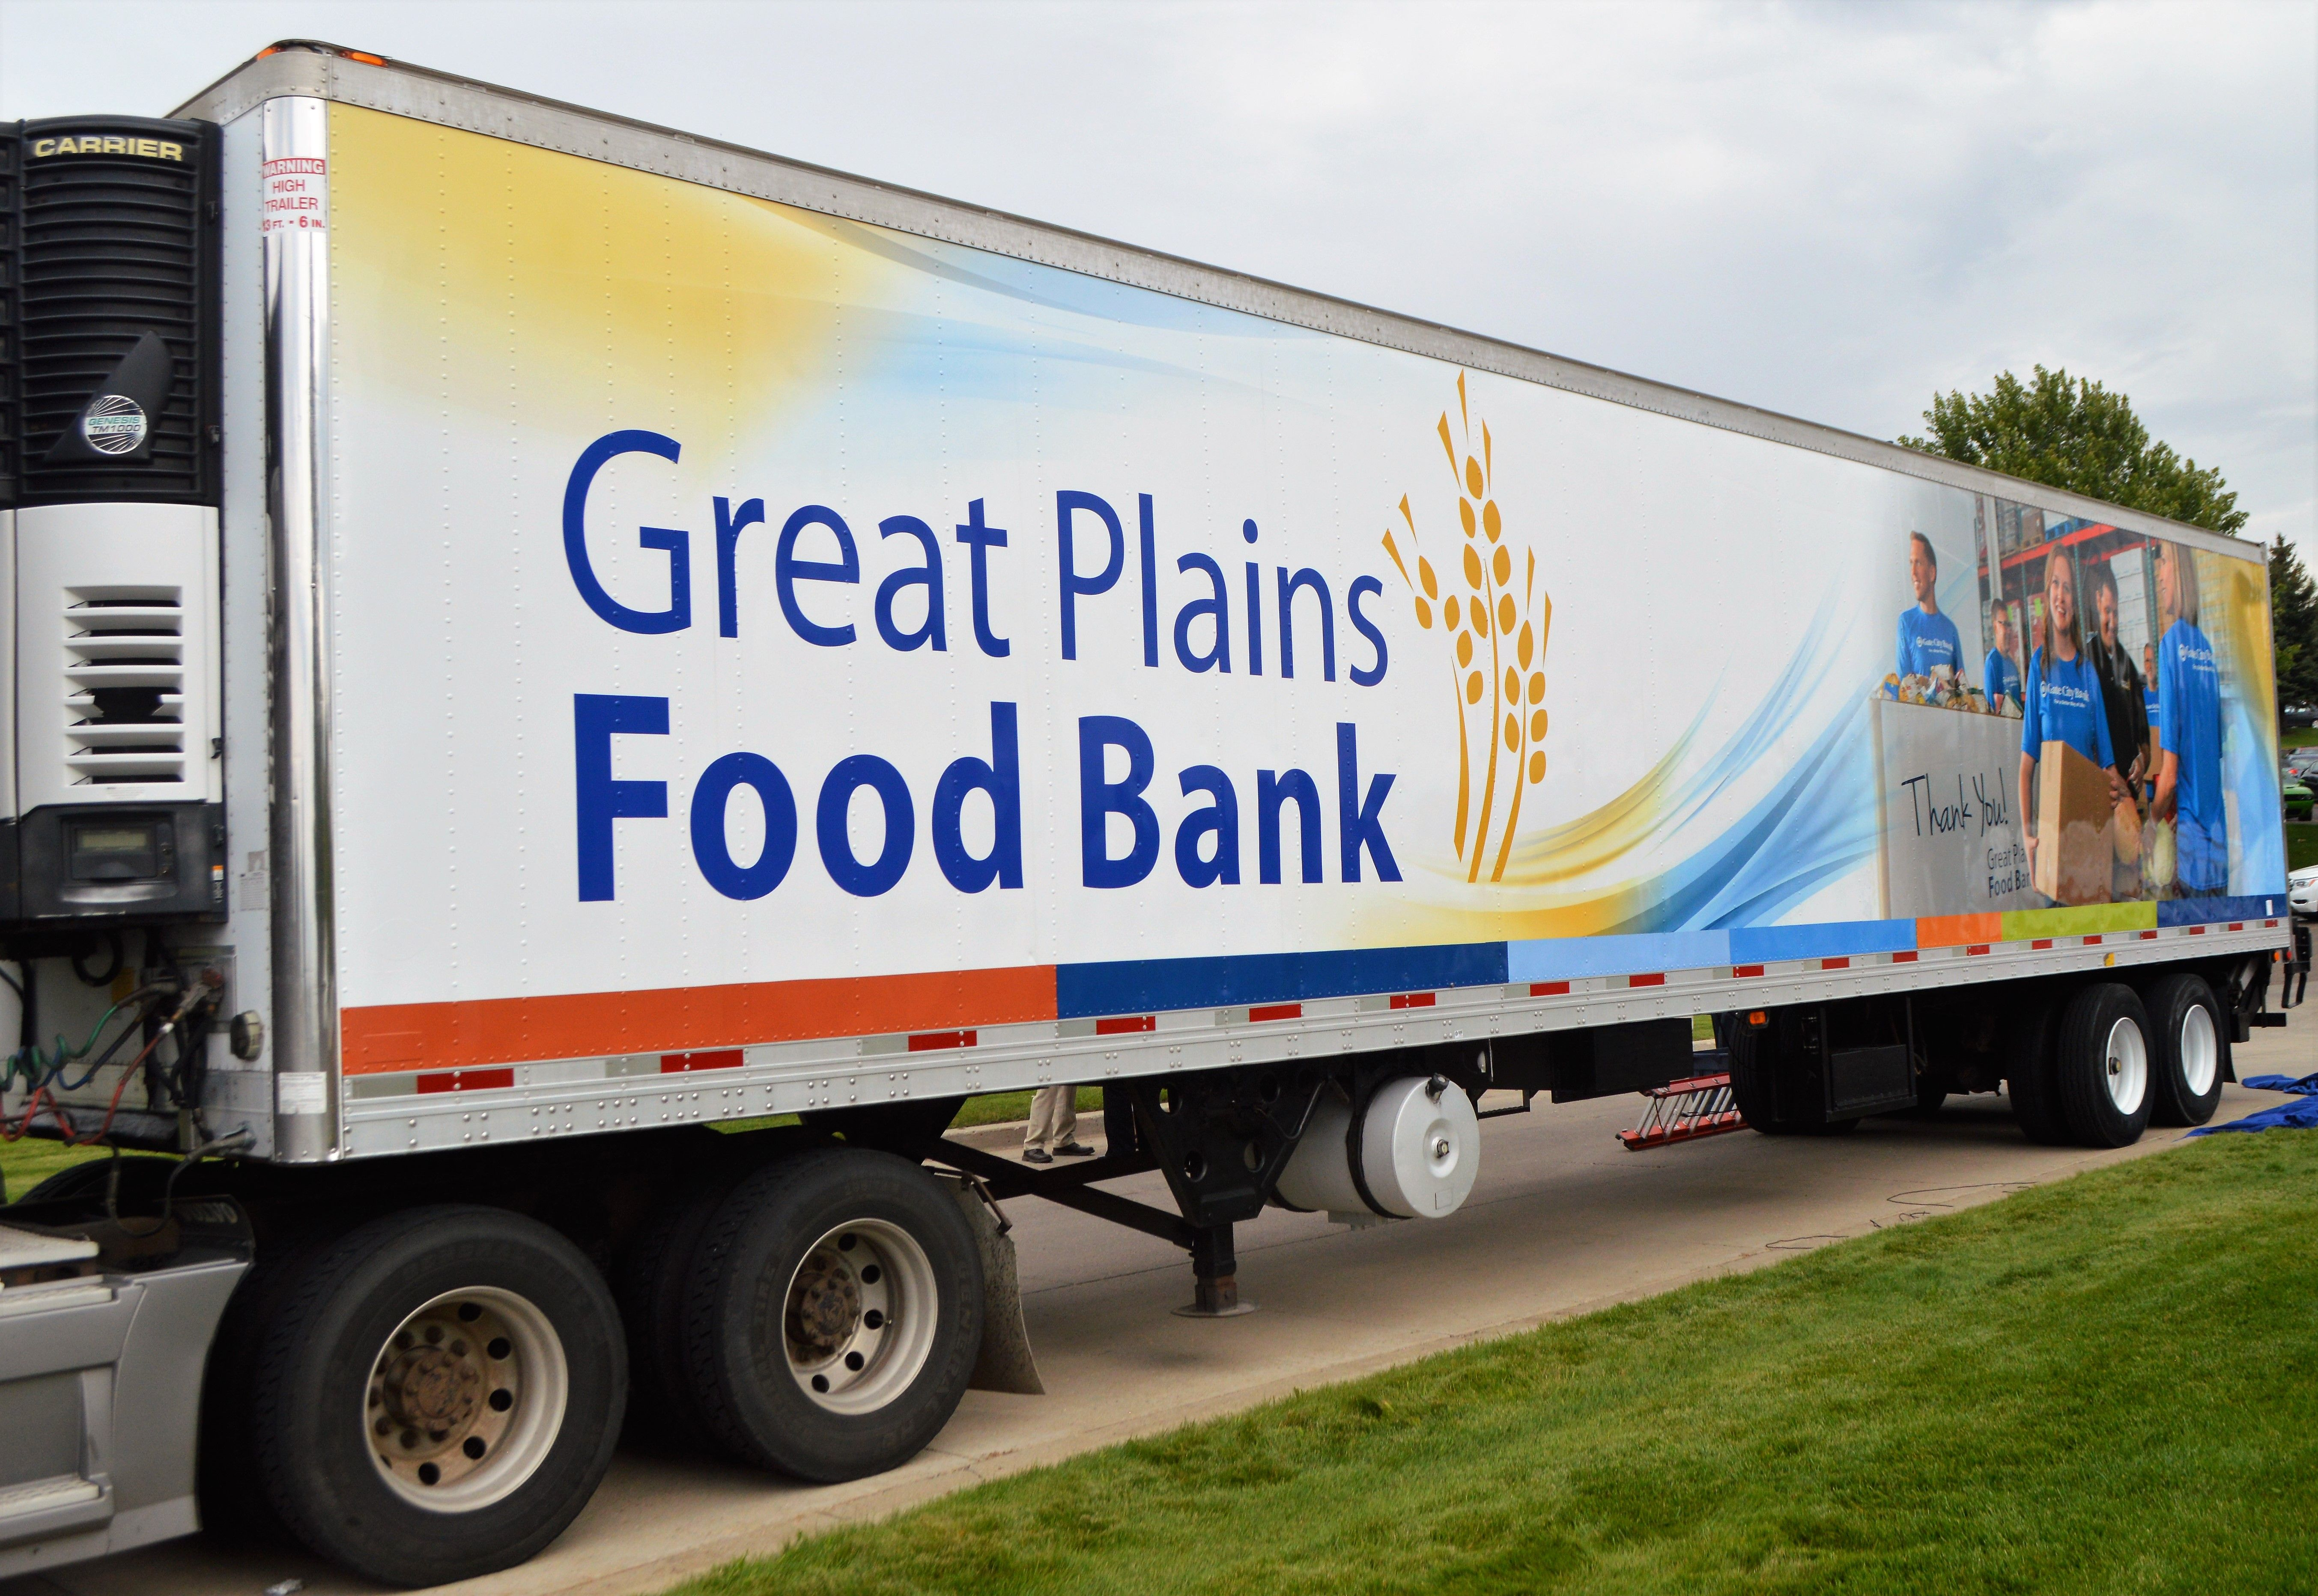 Great Plains Food Bank, Gate City Bank unveil trailer design highlighting hunger-relief partnership